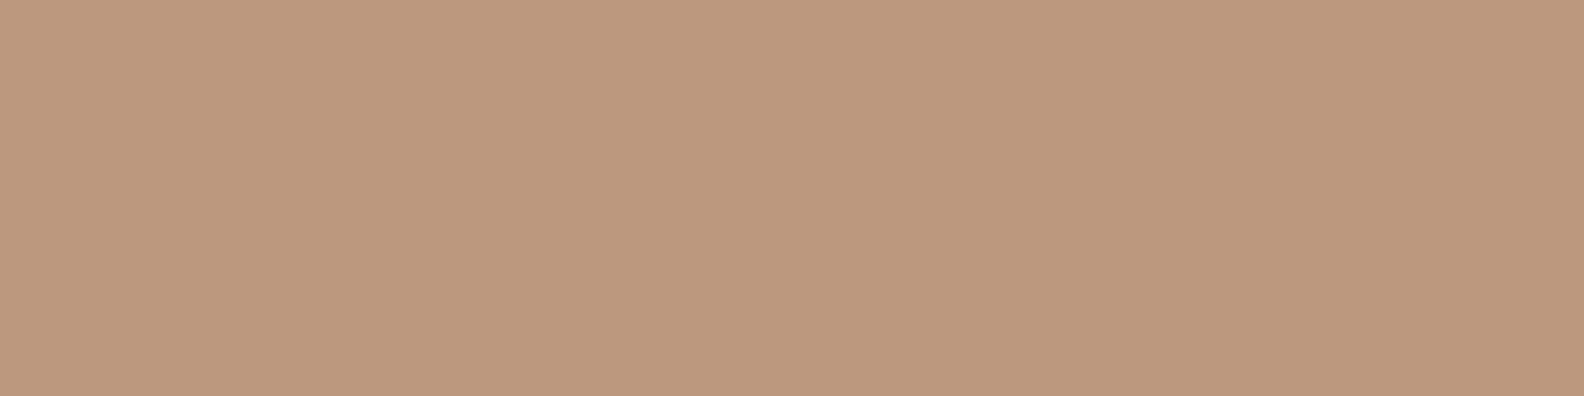 1584x396 Pale Taupe Solid Color Background